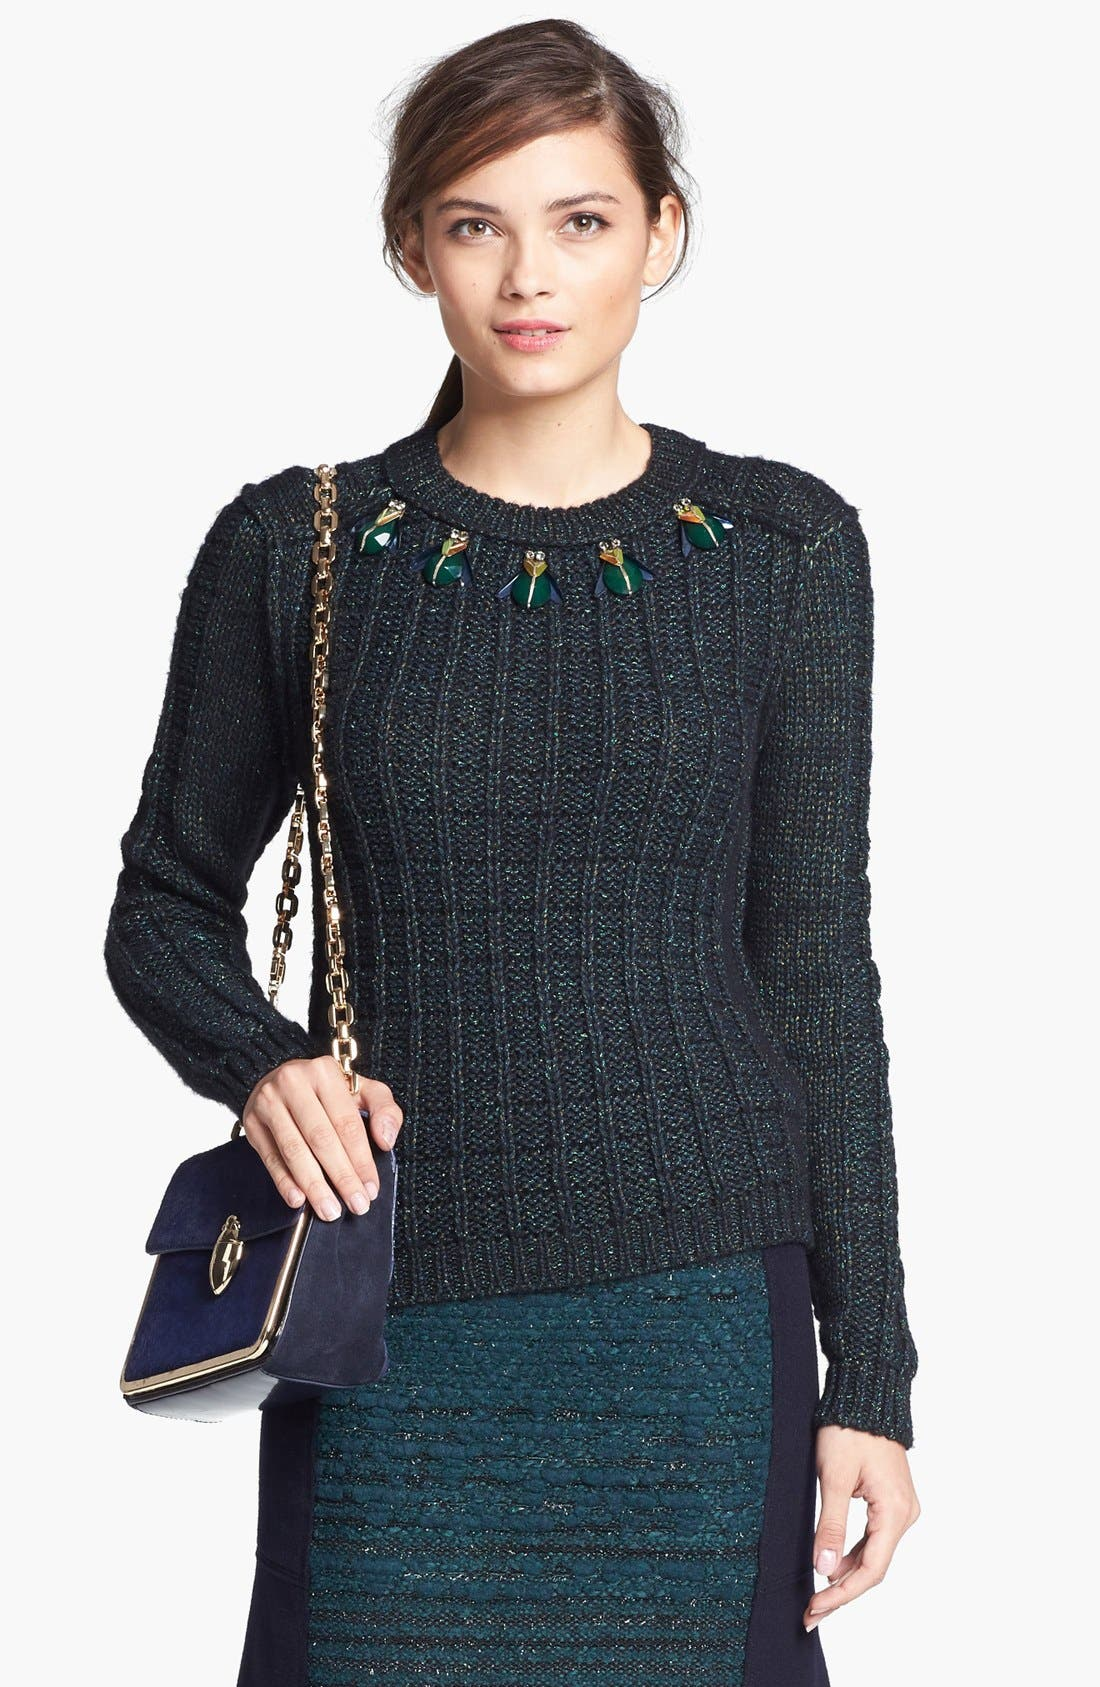 Alternate Image 1 Selected - Tory Burch 'Lucy' Embellished Sweater